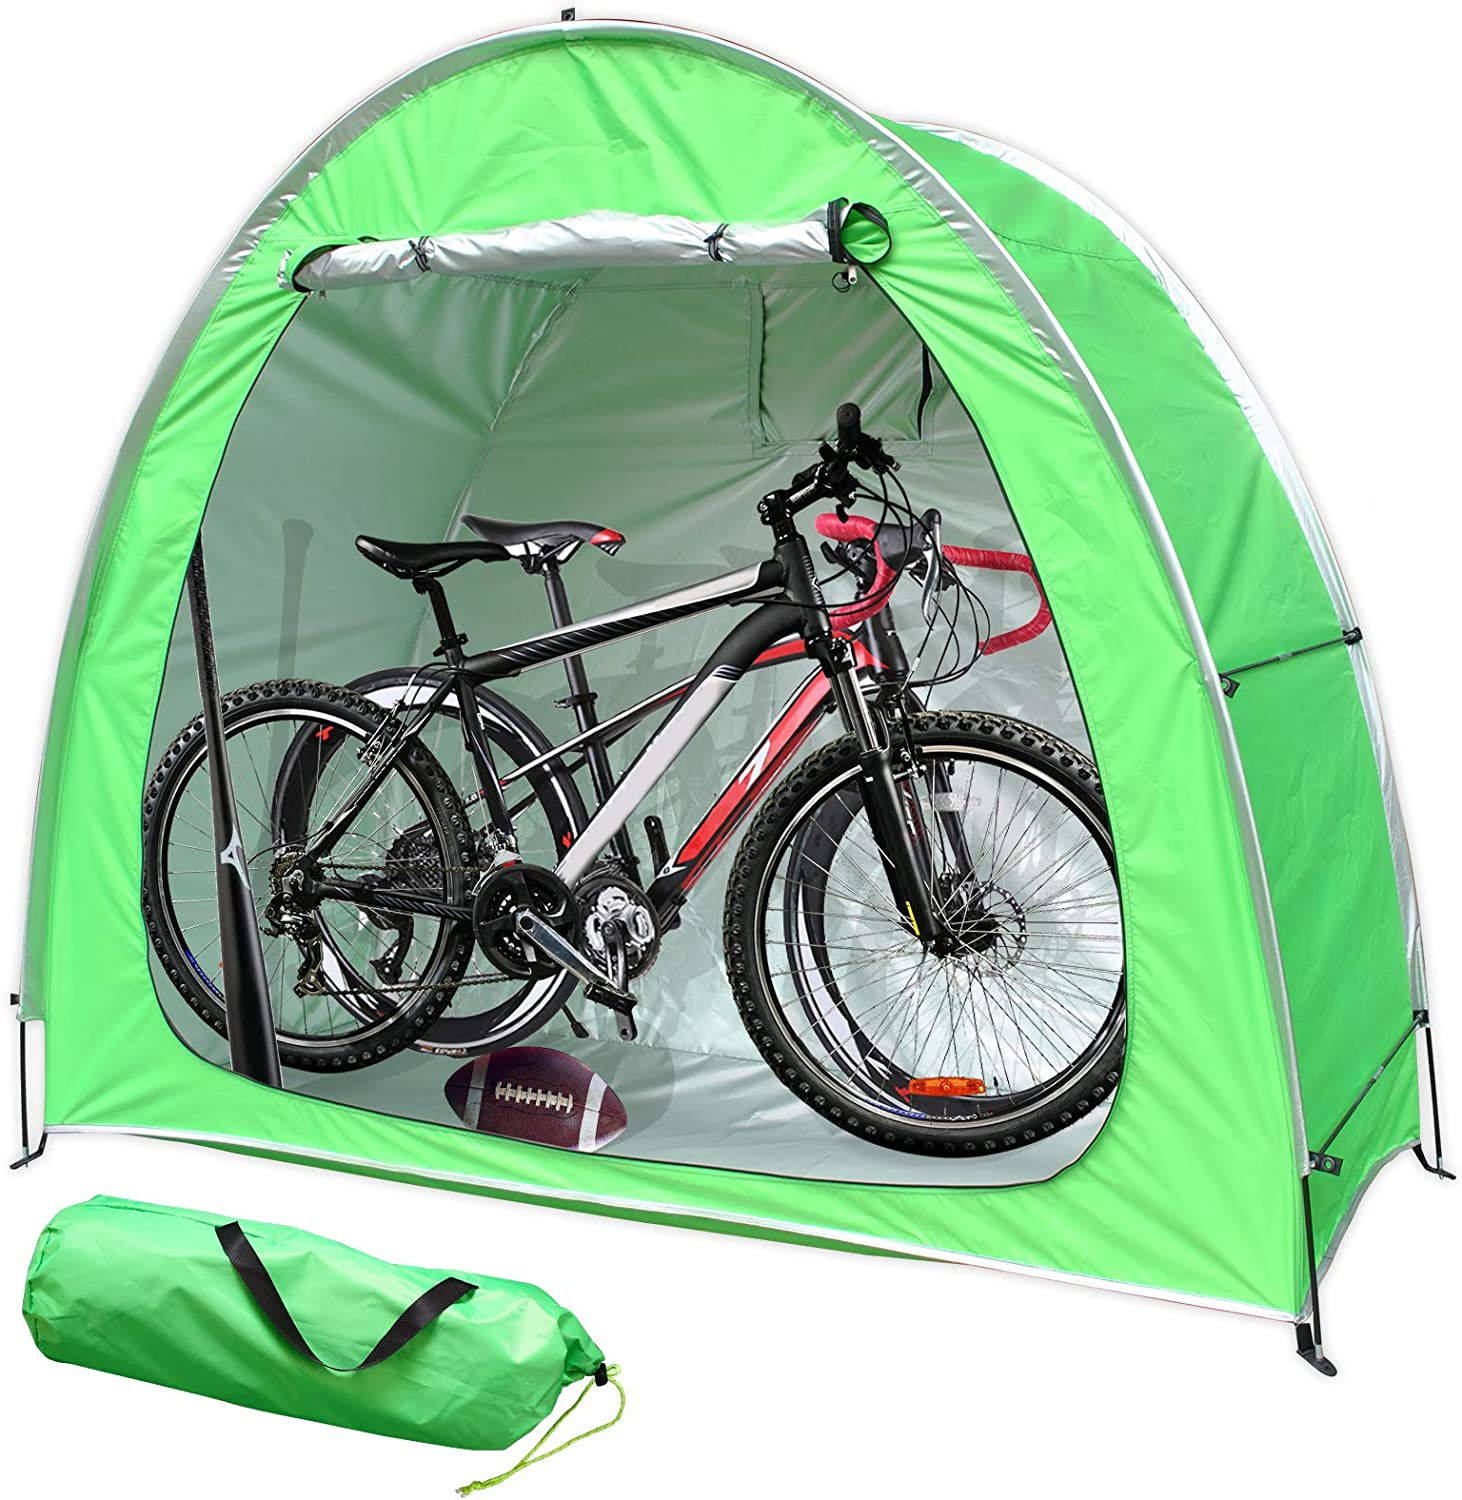 MAIZOA Bicycle Cover Storage Tent, Portable Foldable Tent, Upgraded 210D Silver Coated Oxford Cloth,Outdoor Garden Storage shed, Can be Placed Tricycle, Motorcycle